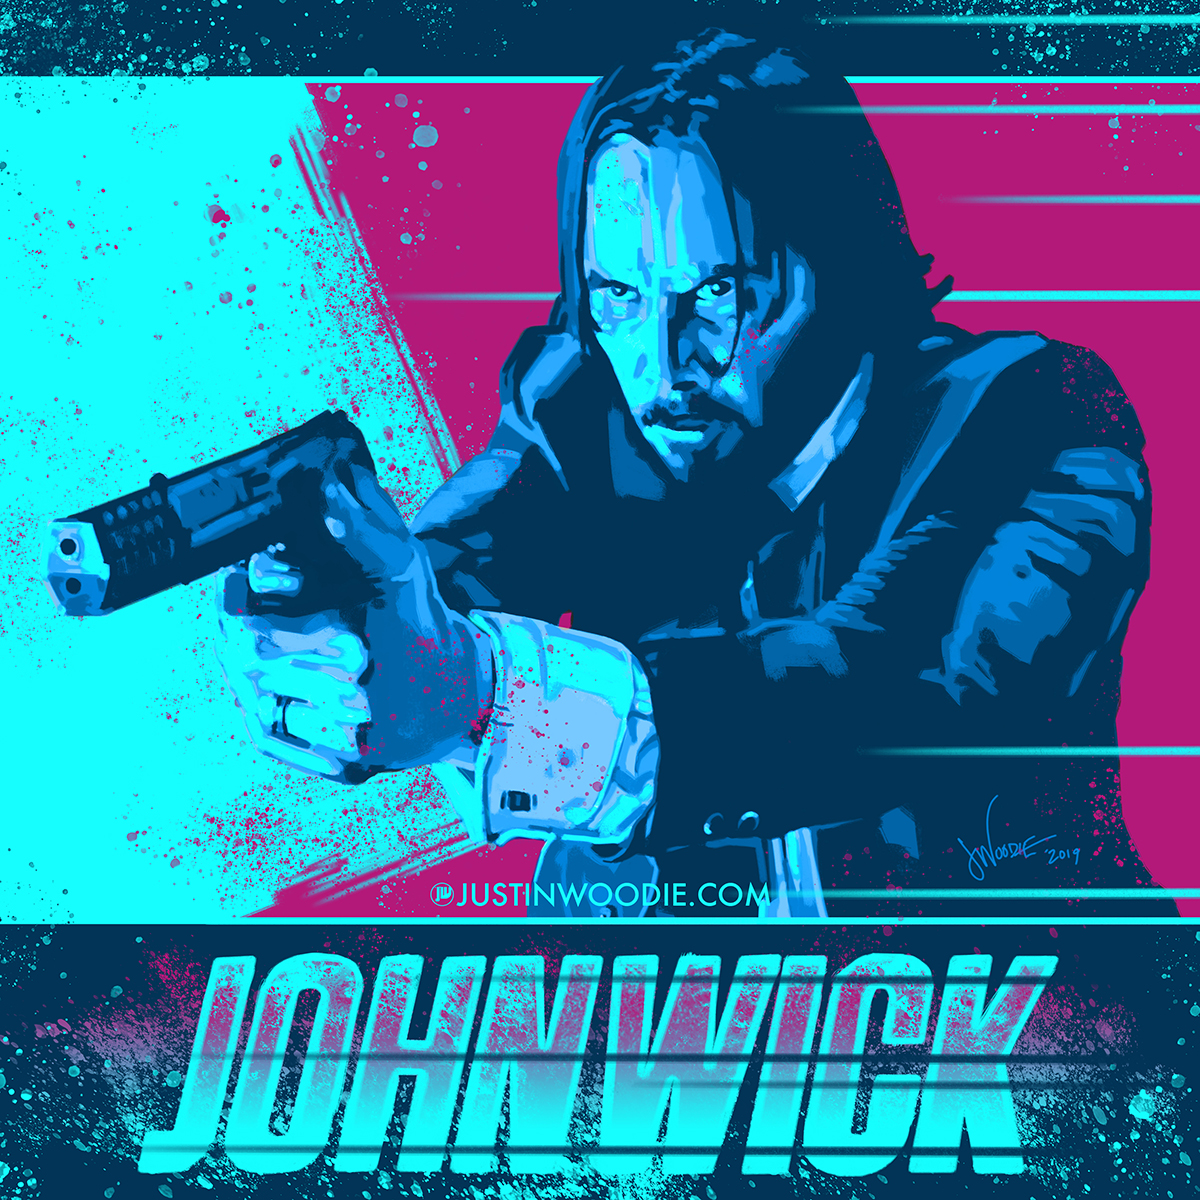 John Wick Digital Illustration